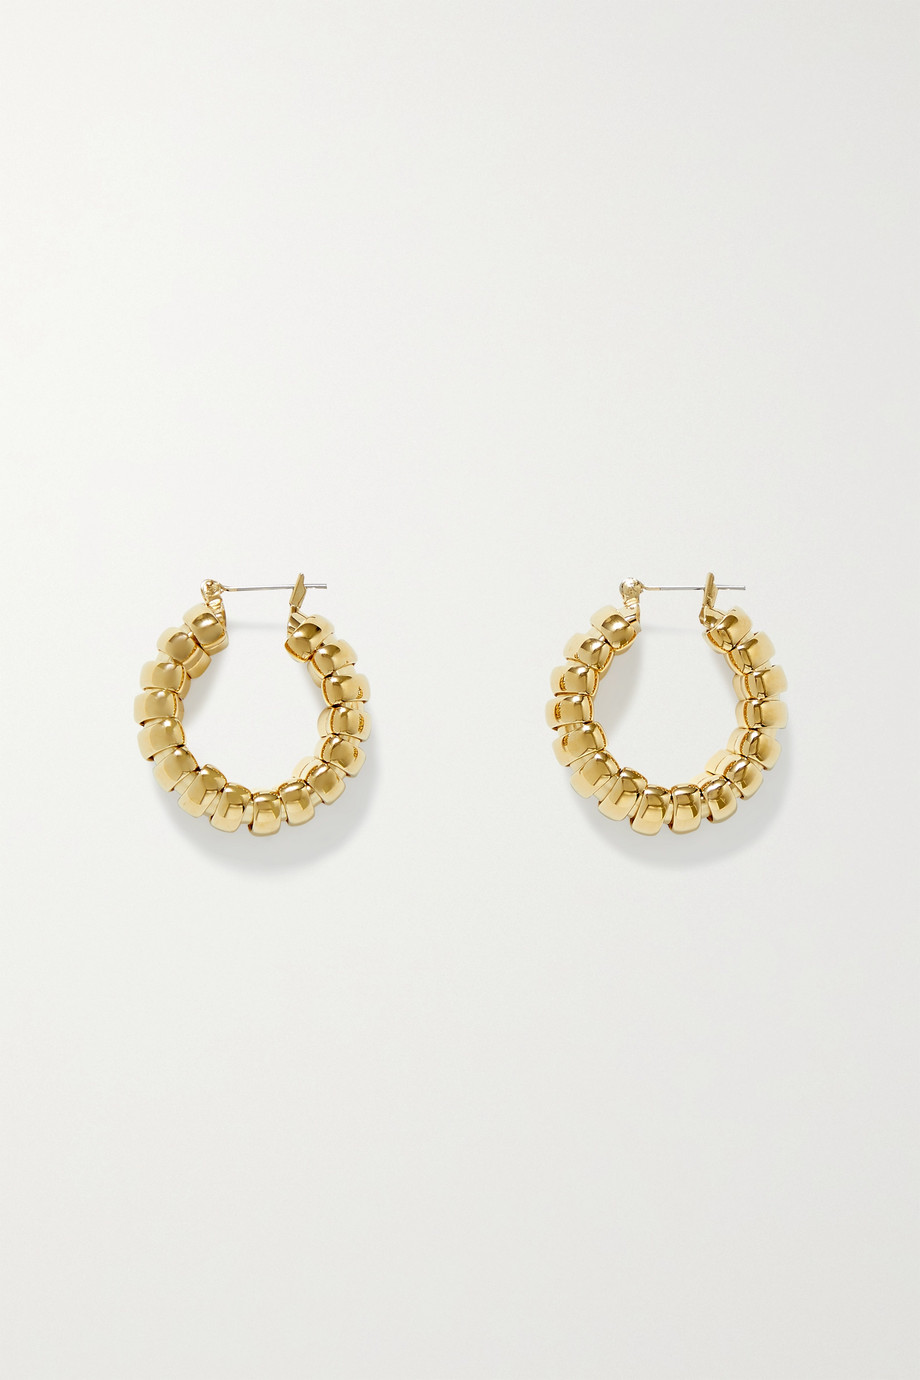 Laura Lombardi Camilla gold-plated hoop earrings